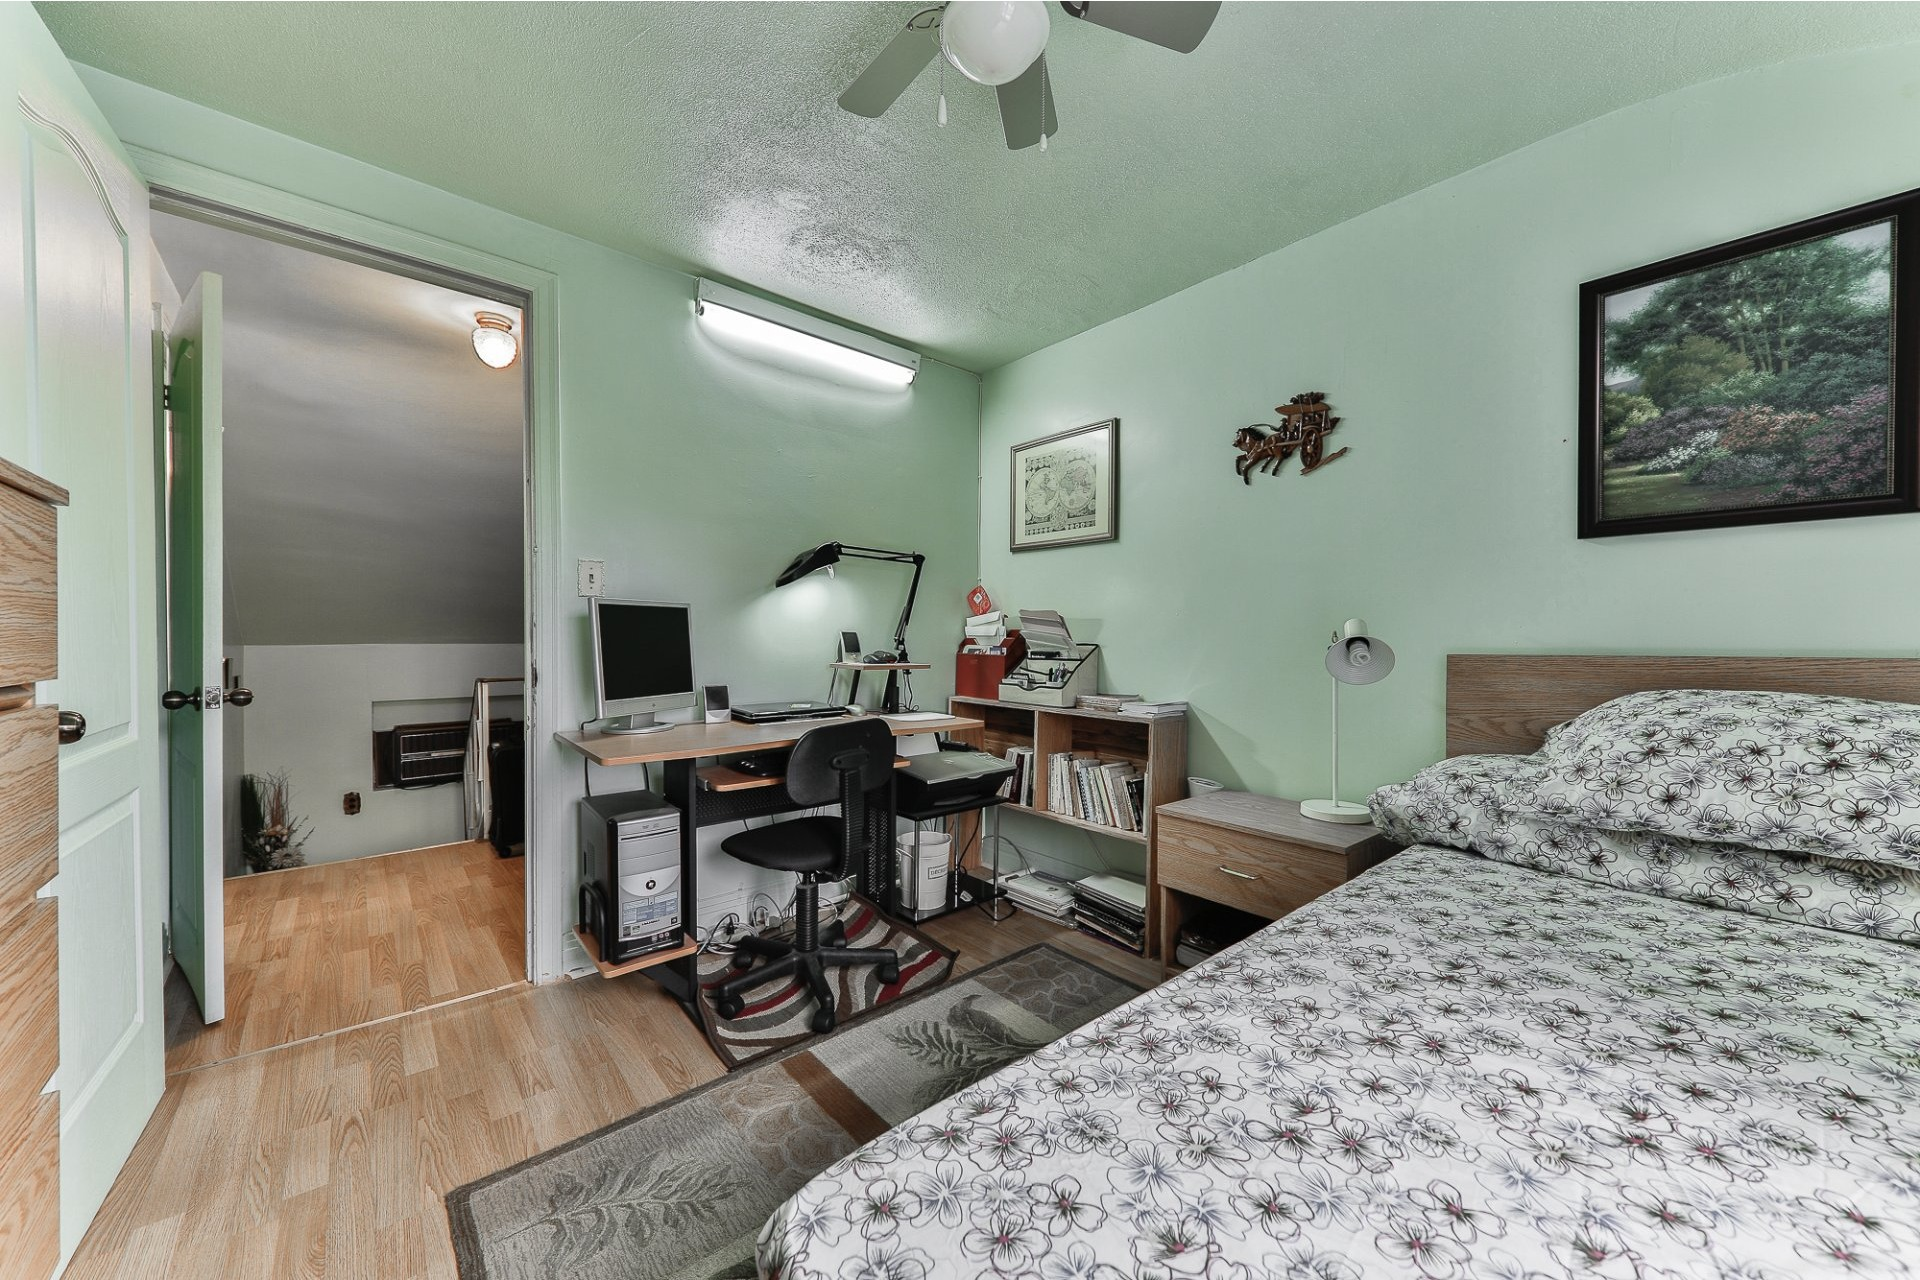 image 15 - House For sale Ahuntsic-Cartierville Montréal  - 8 rooms